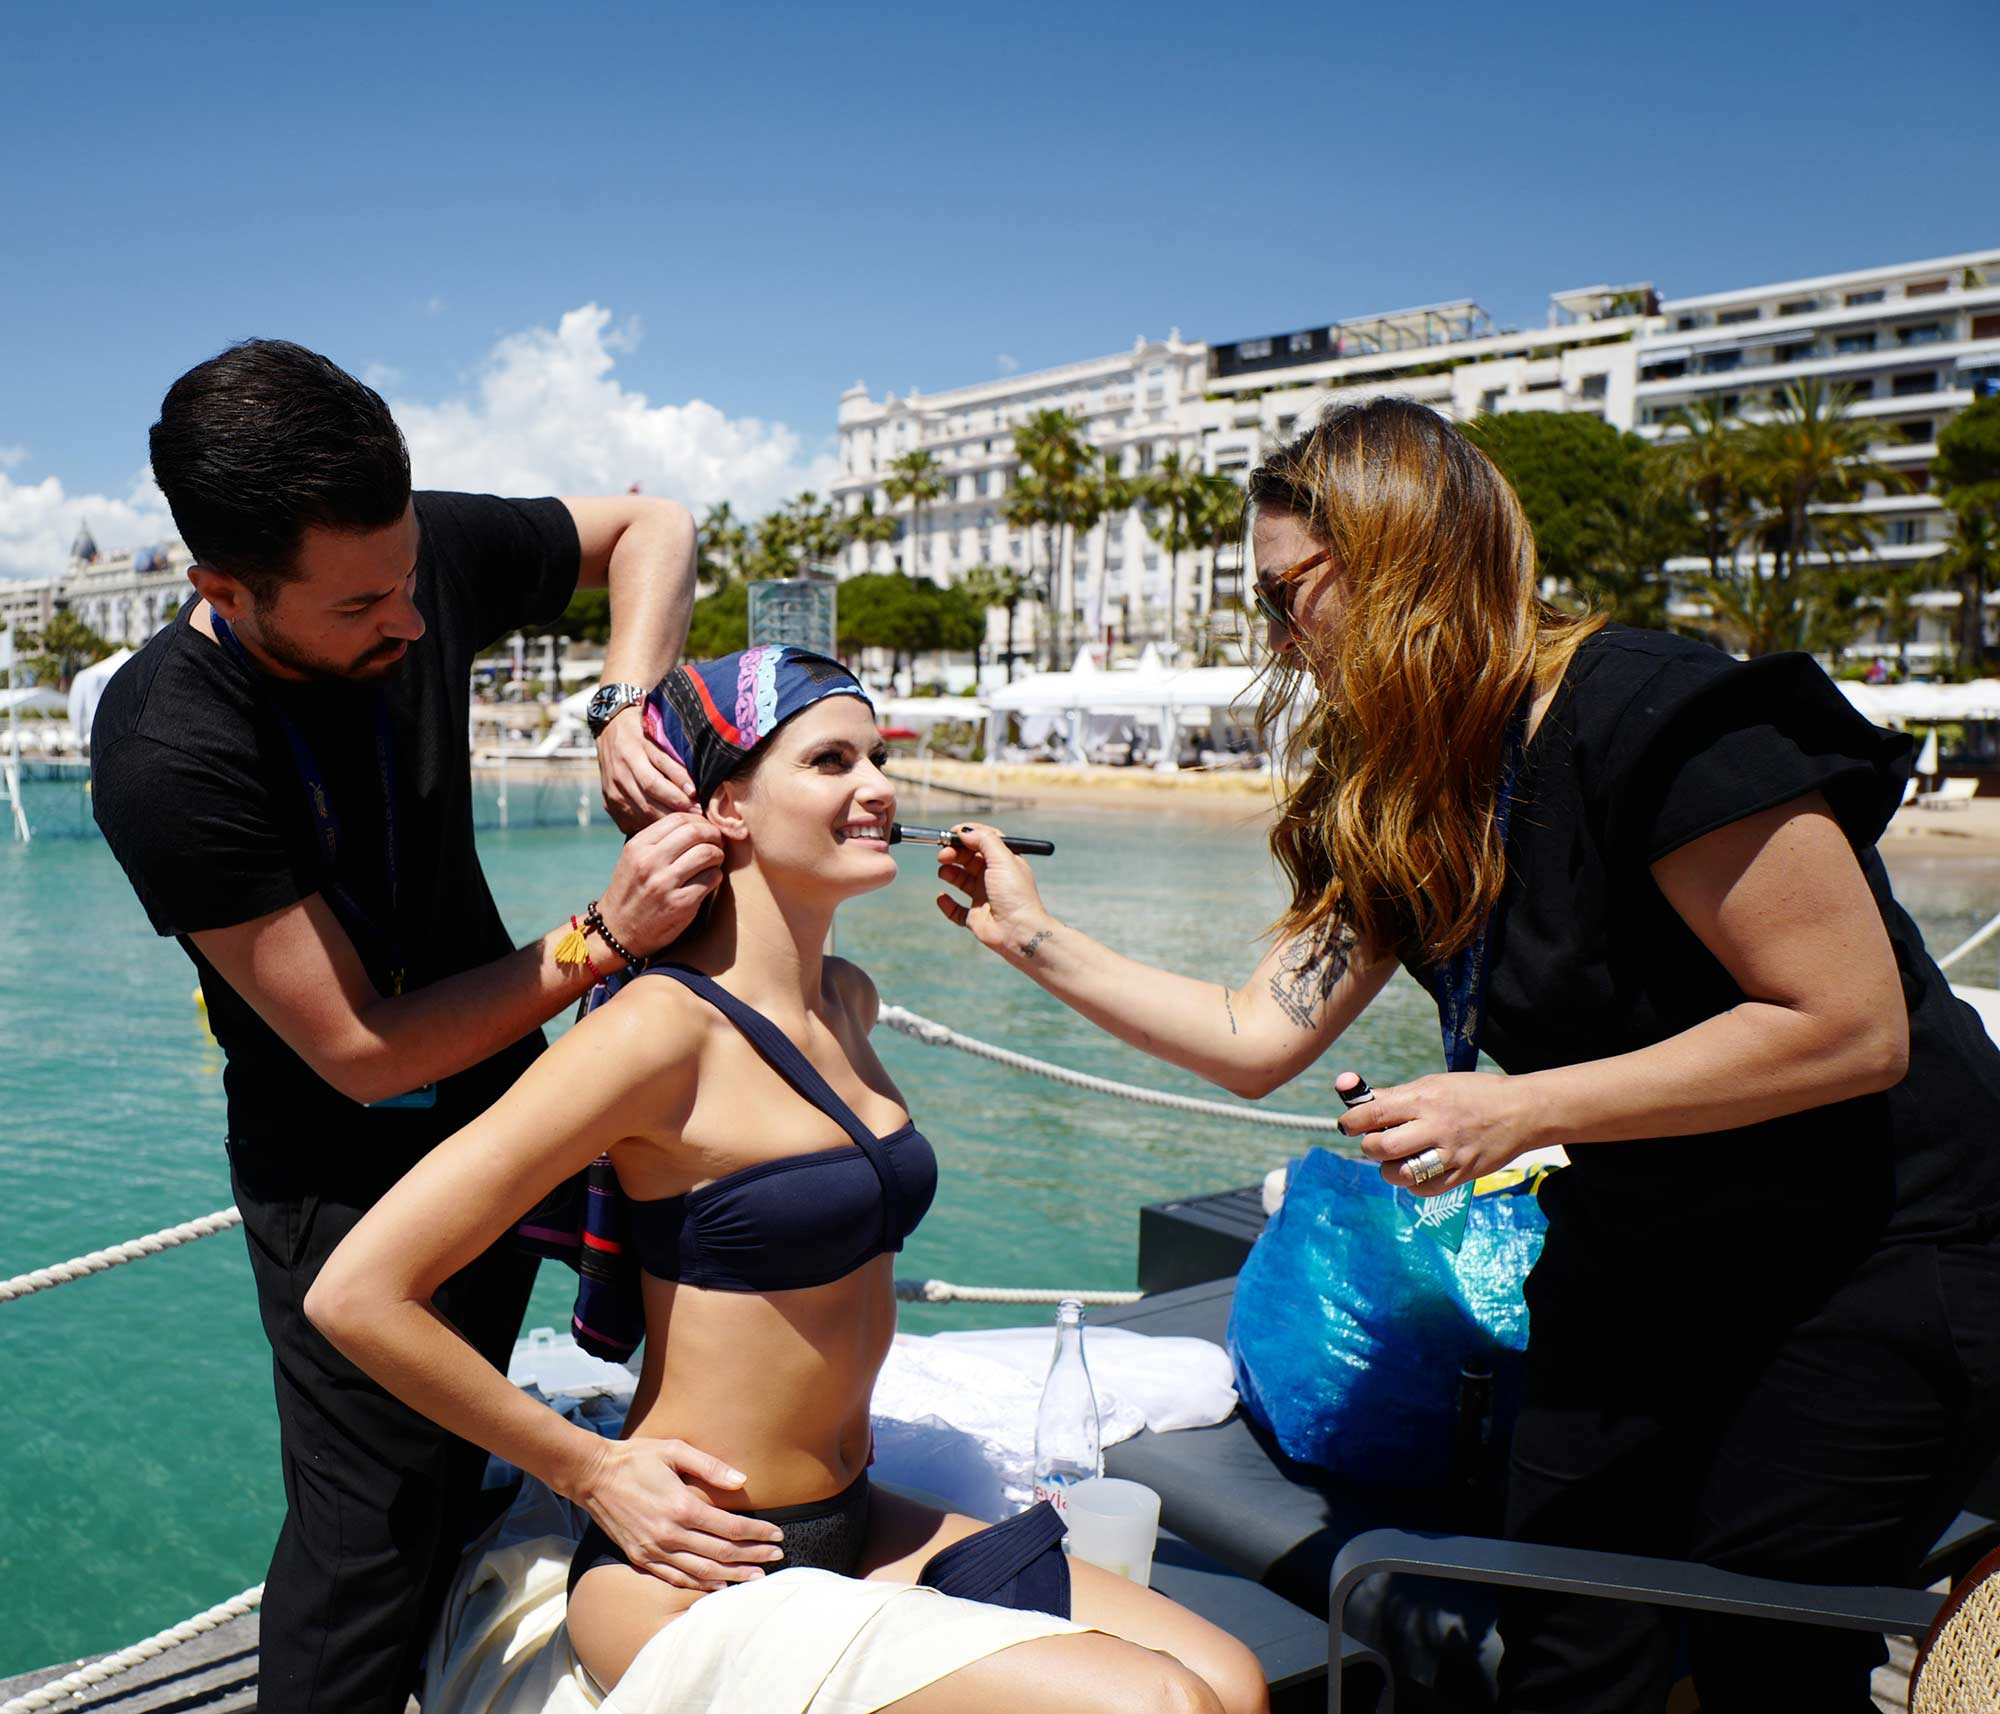 Cannes 2017 - Shooting Hola! - Isabeli Fontana, hair Luca De Bartolo, make up Emanuela Di Giammarco